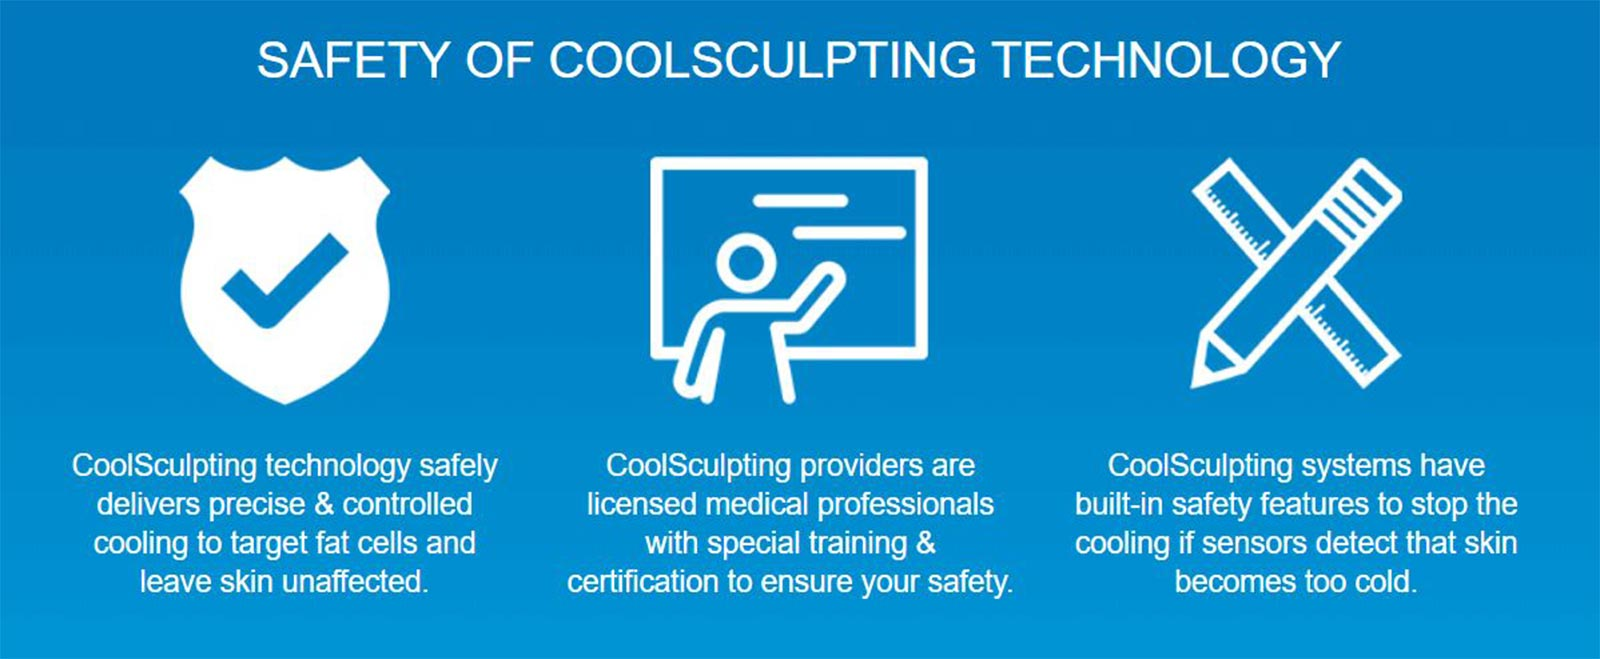 Safety of Coolsculpting Technology